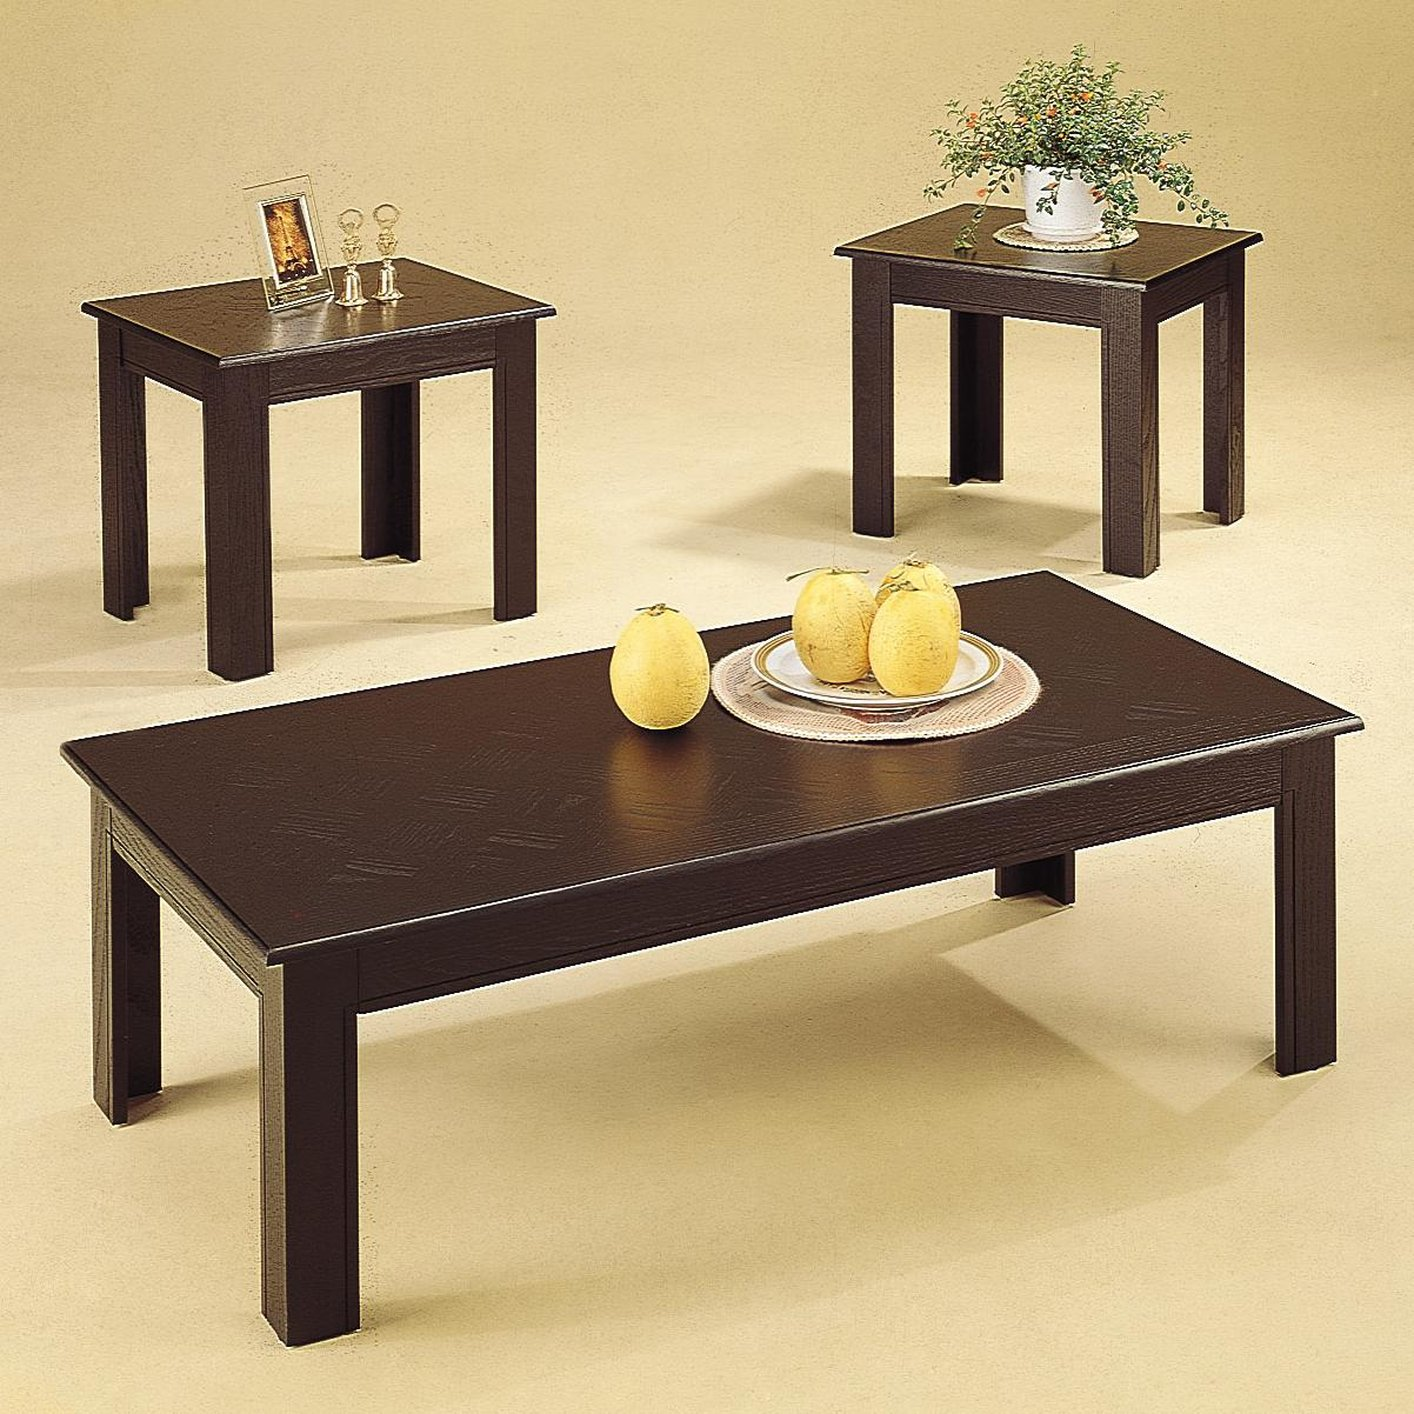 Black and wood coffee table - Acosta Black Wood Coffee Table Set